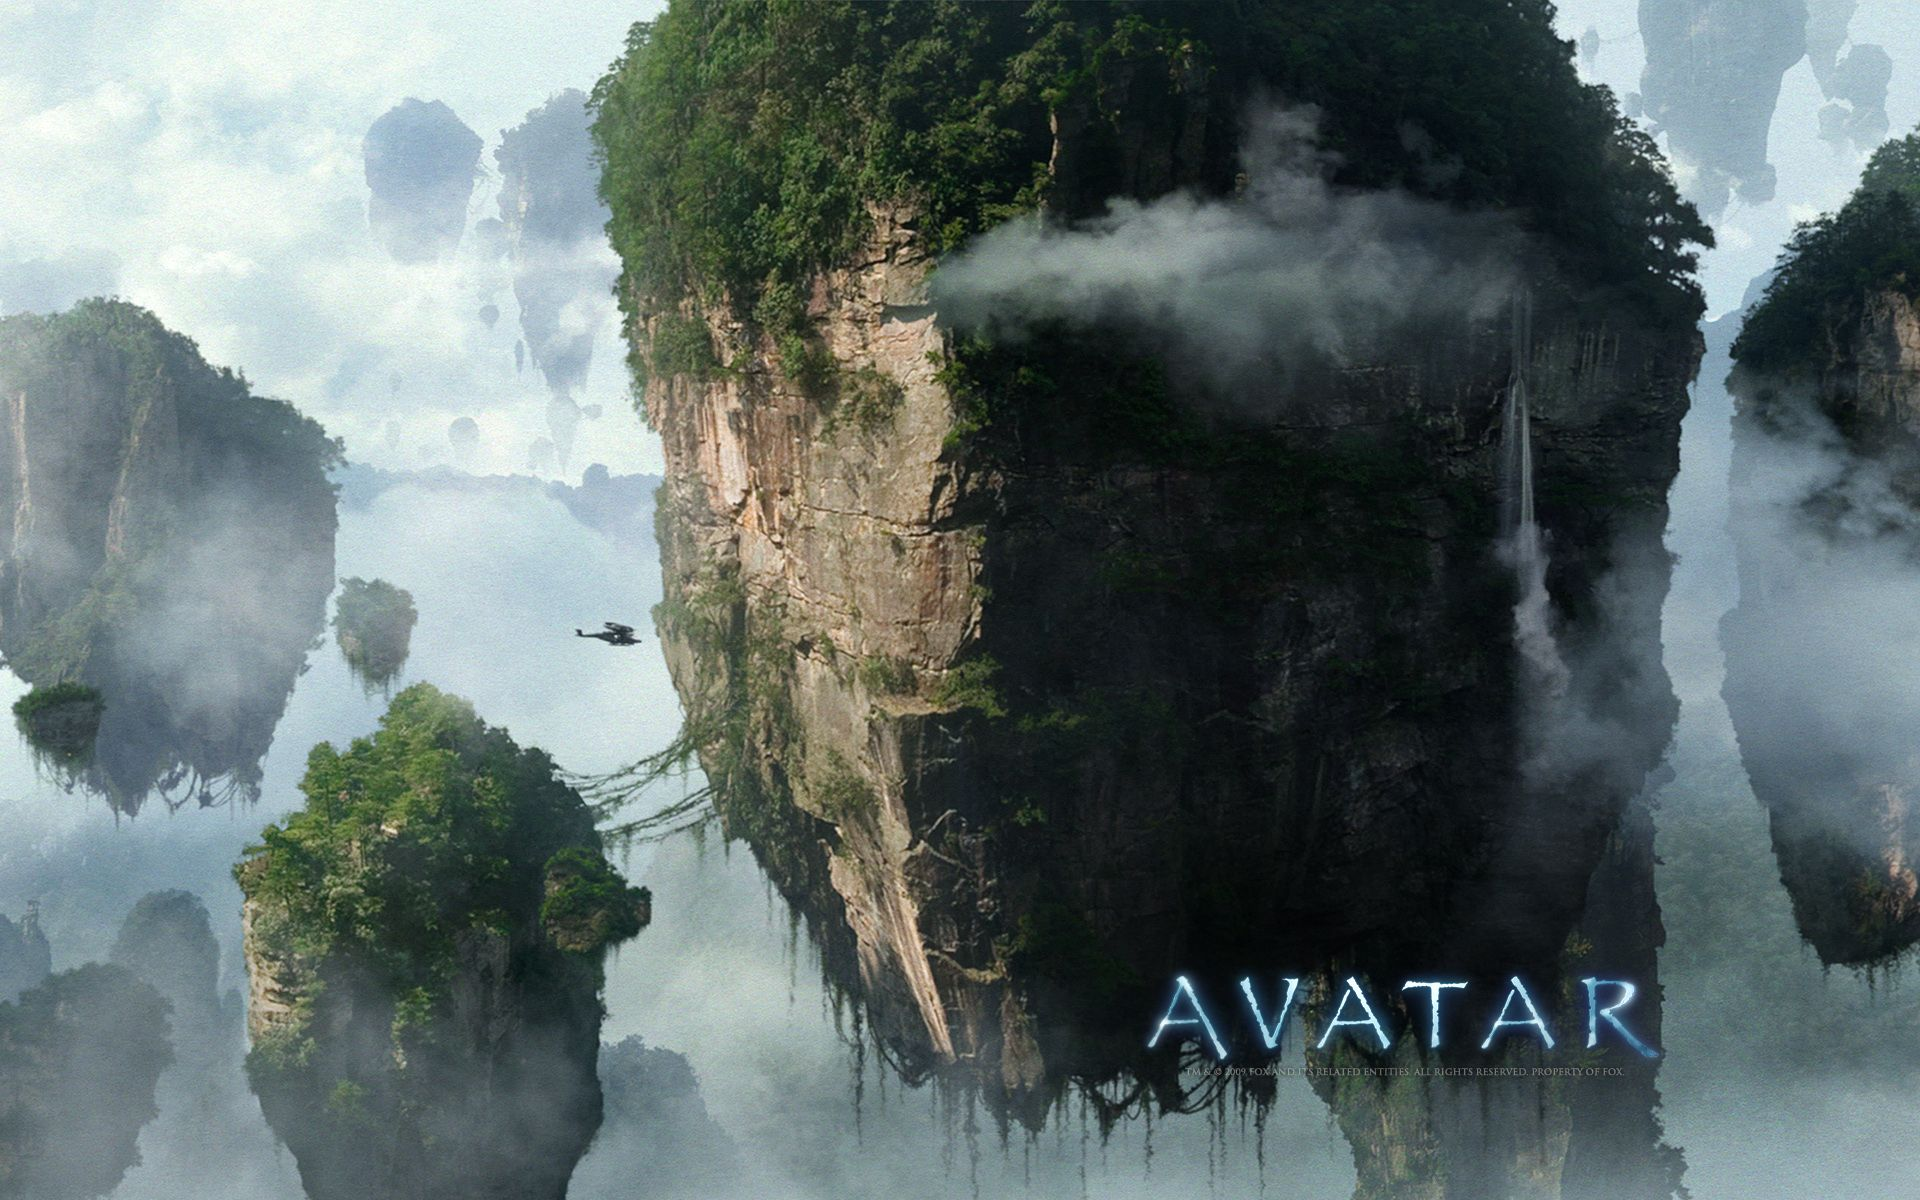 Pandoras box wallpaper image featuring english sculpture - Avatar Amazing Hd Wallpapers Of The 3d Epic Movie Avatar Leawo Official